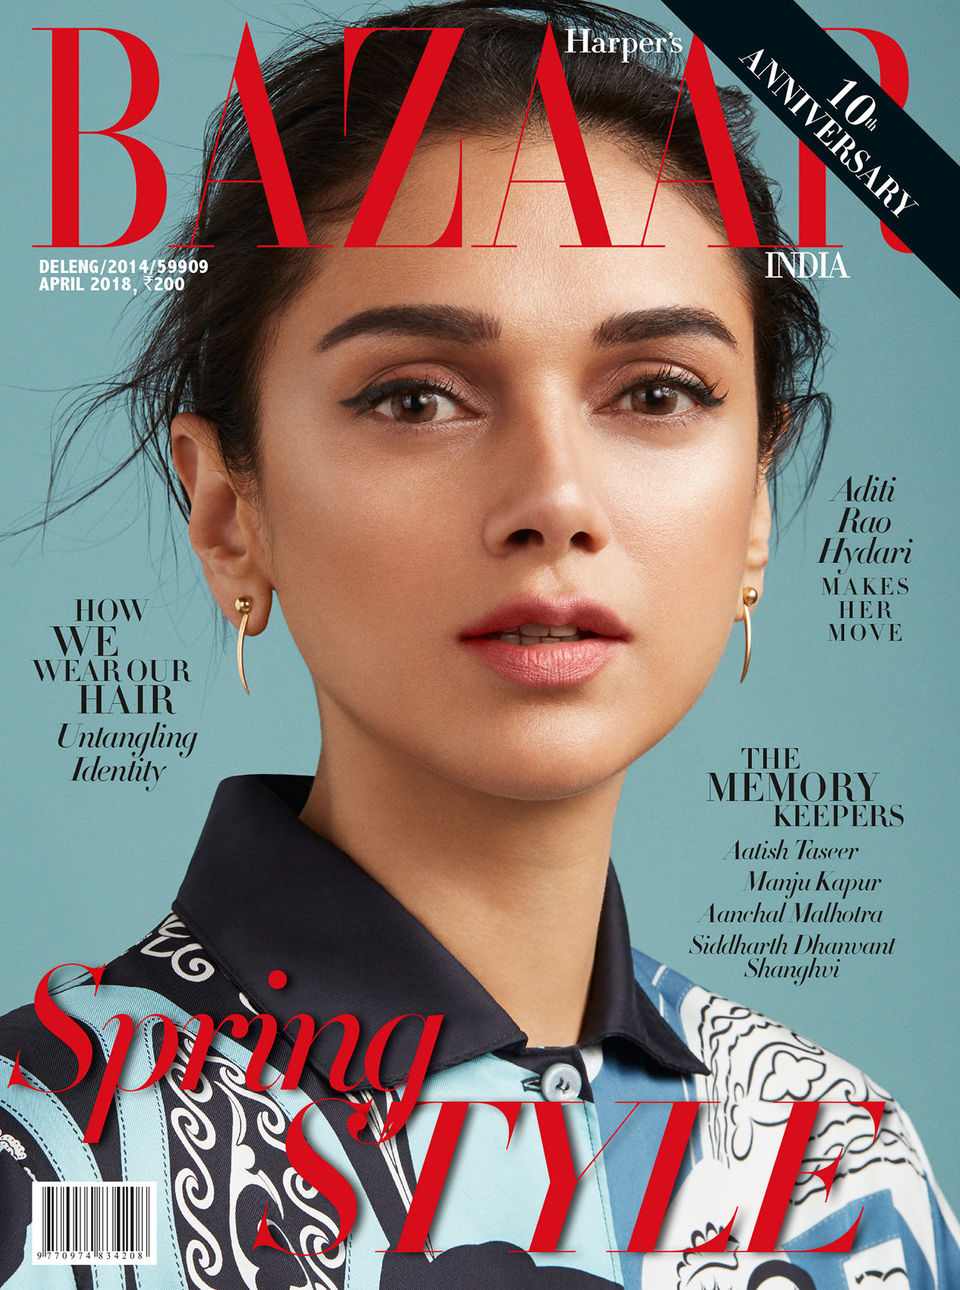 Cover for Harper's Bazaar India Cover